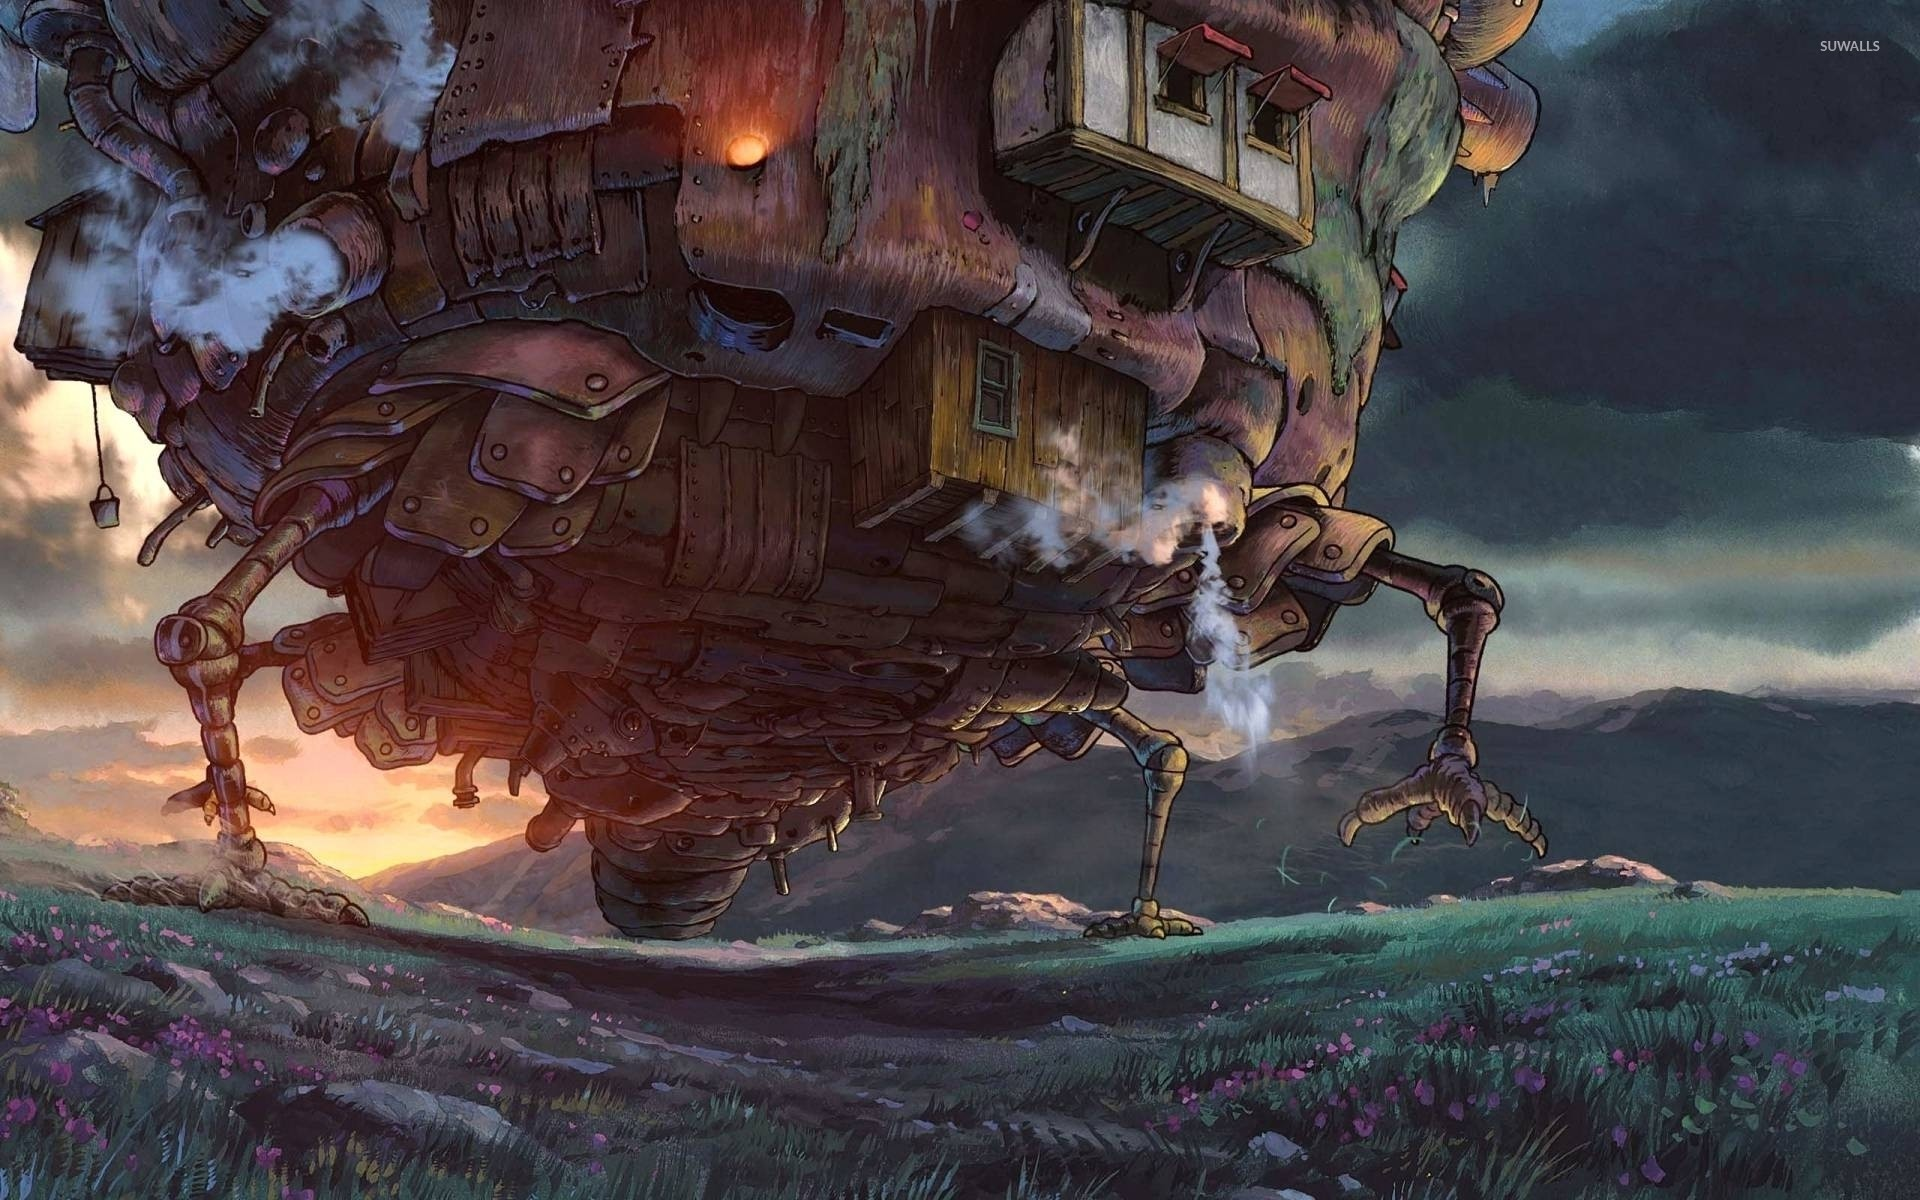 1920x1200 Howl's Moving Castle [2] wallpaper - Anime wallpapers - #40994